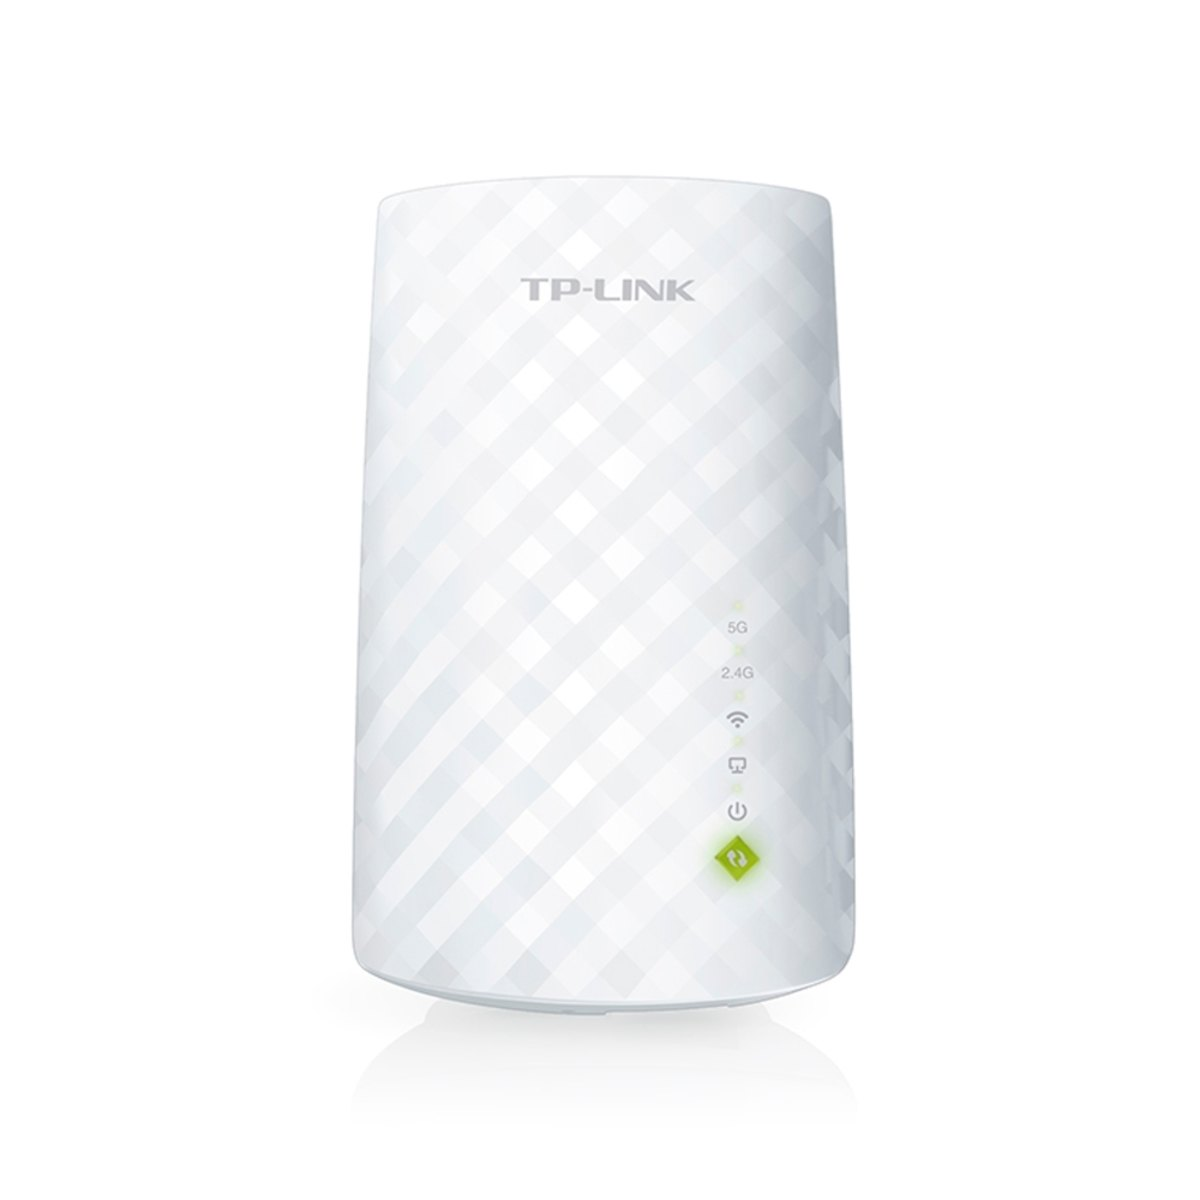 EXTENSOR DE ALCANCE WIRELESS DUAL BAND AC750 RE200 TP-LINK - In-Pacto Informática